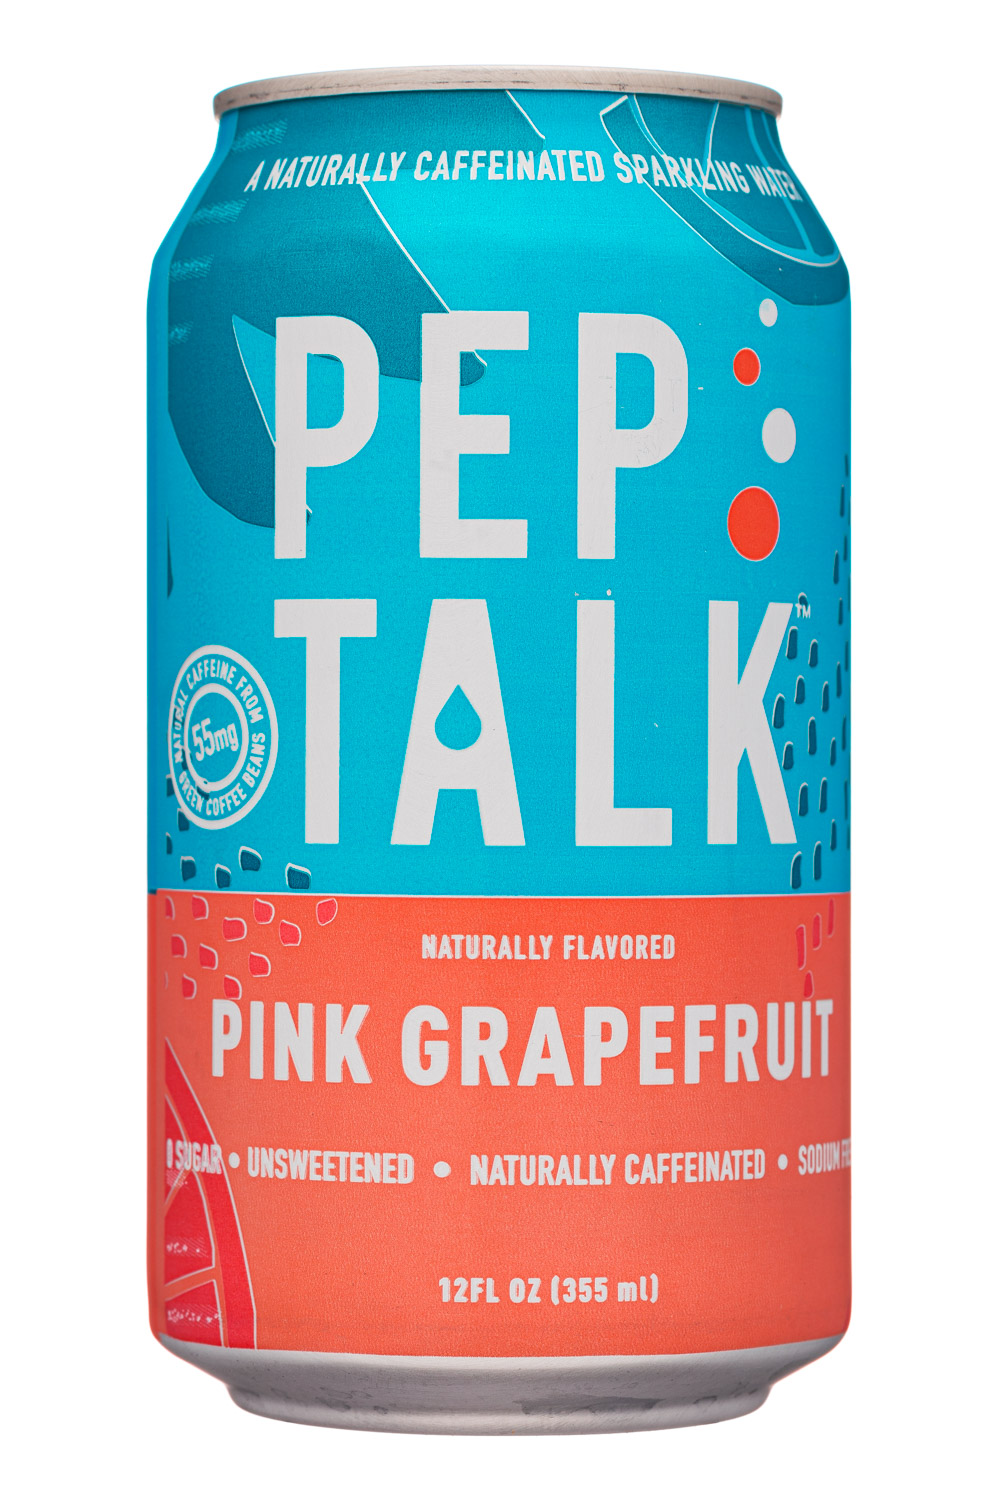 Pink Grapefruit - Naturally Caffeinated